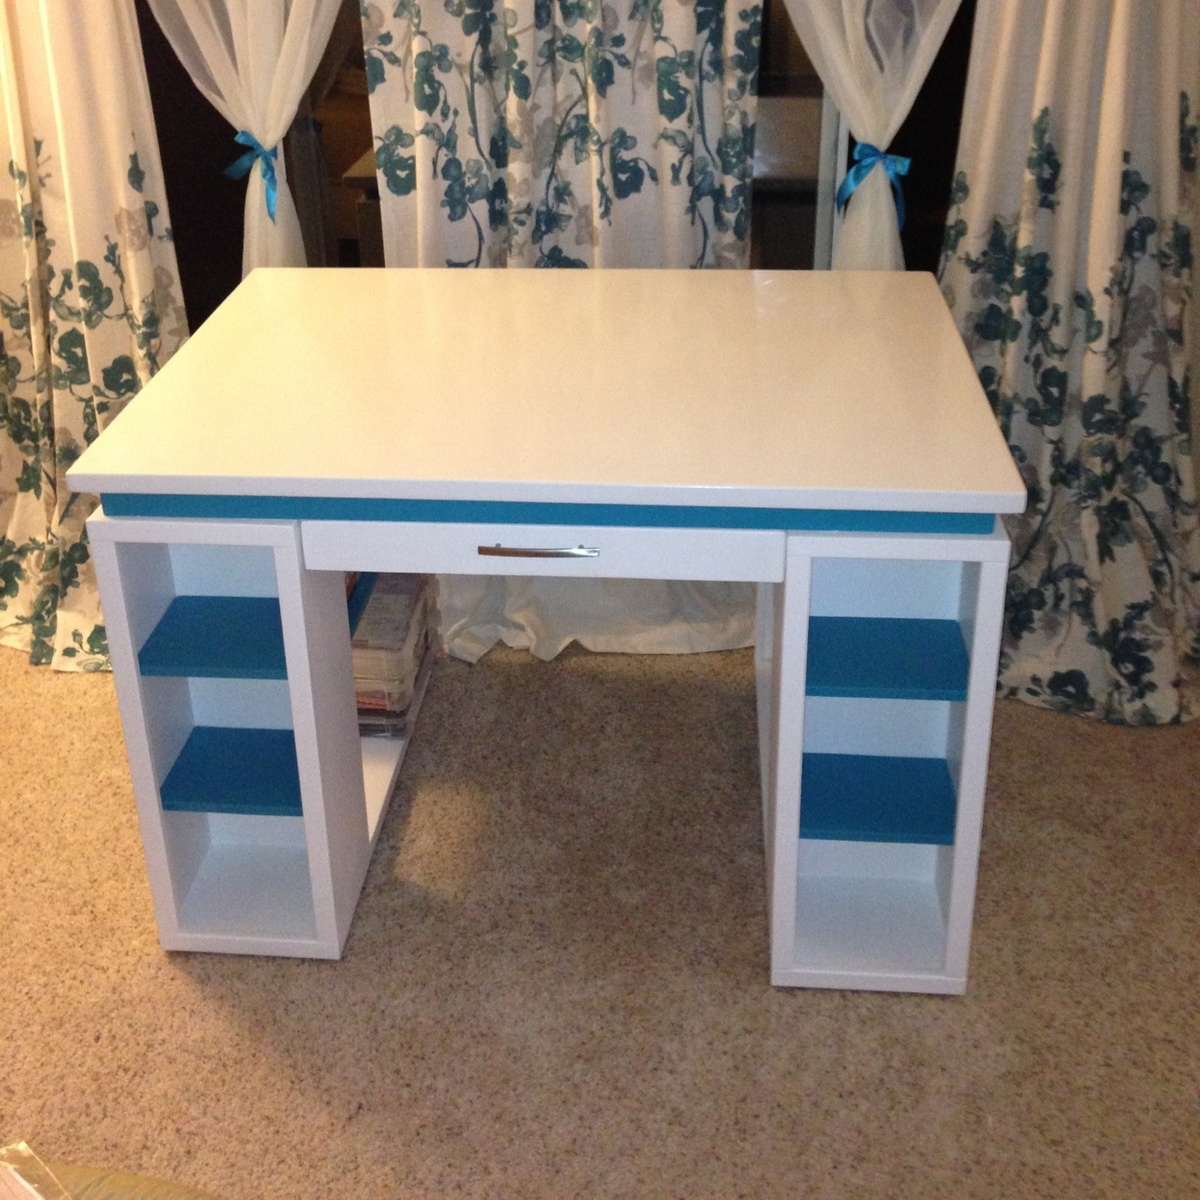 Ana white craft table diy projects craft table solutioingenieria Choice Image